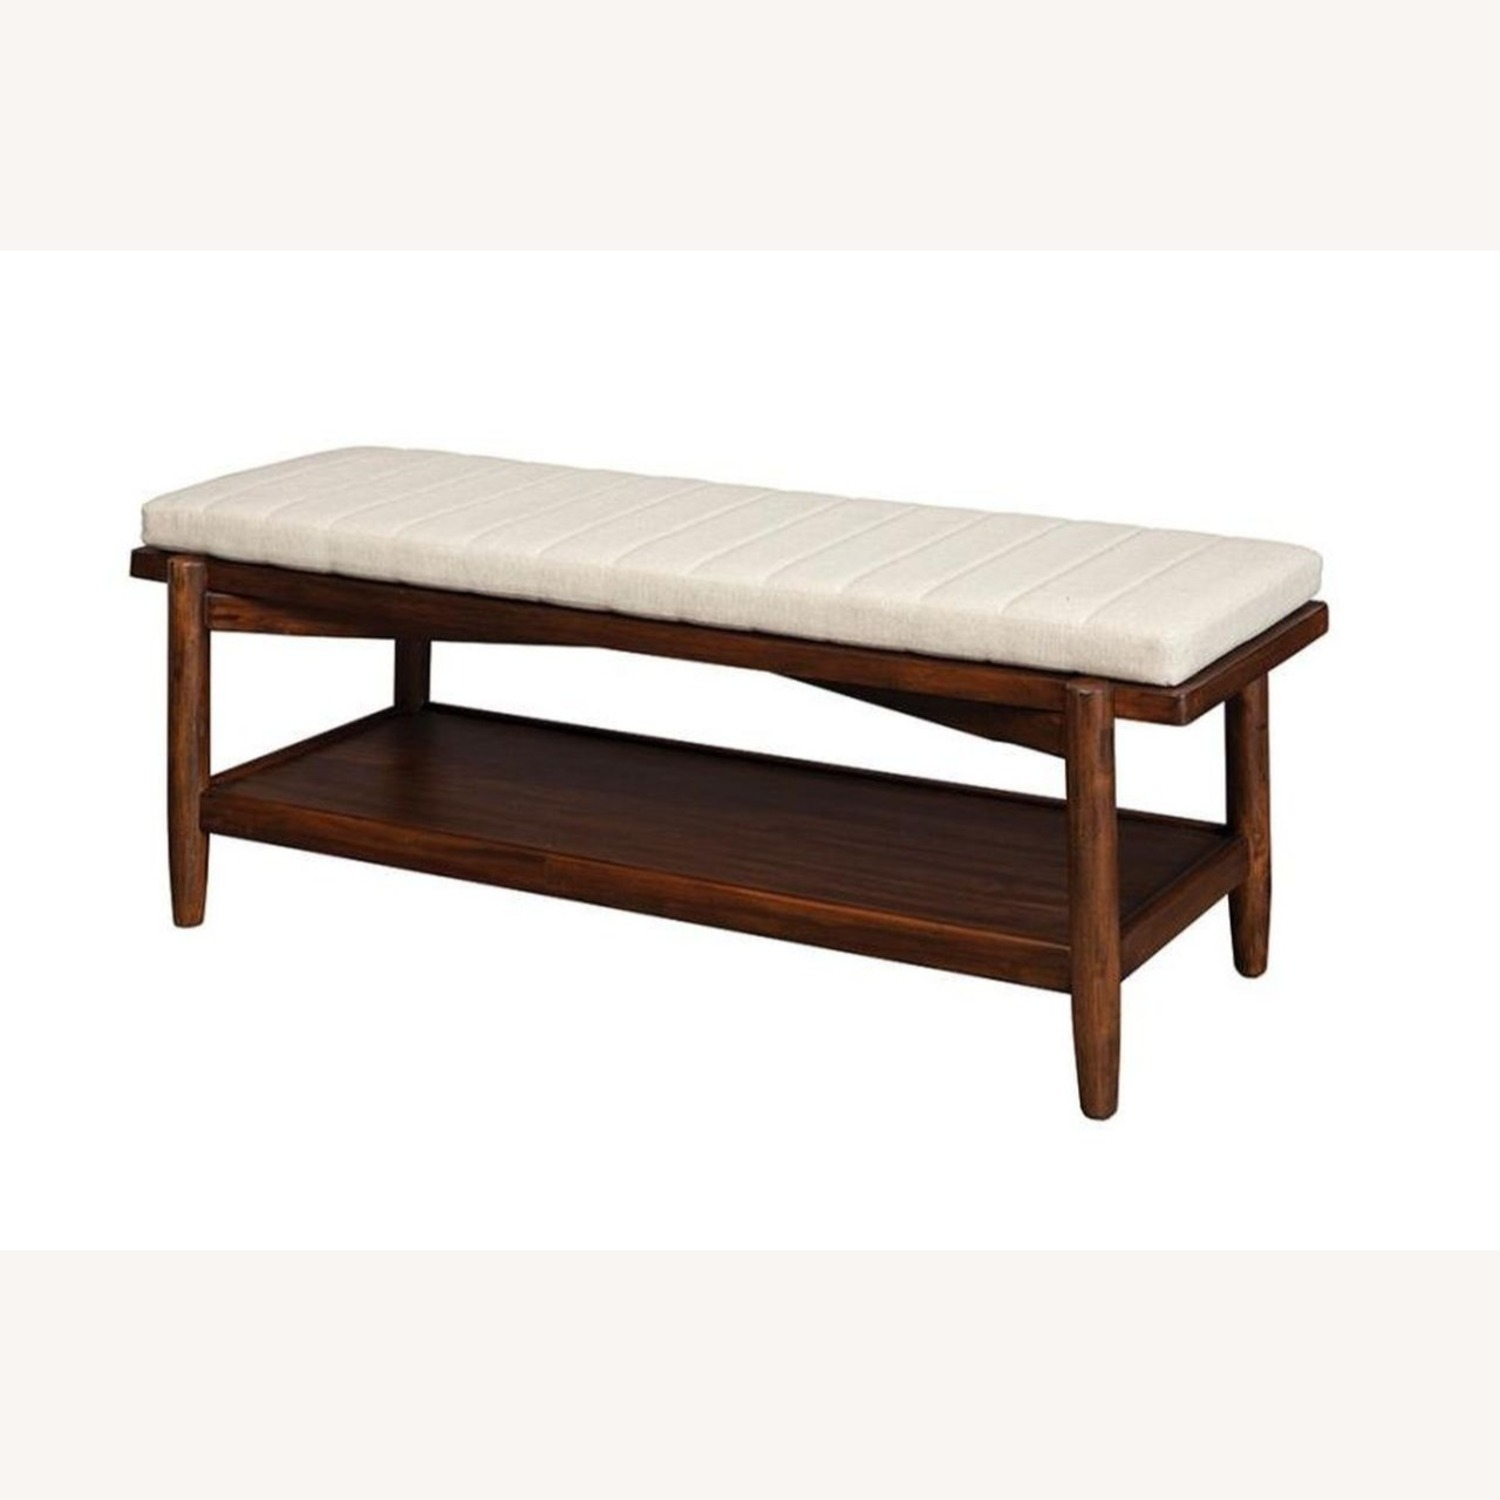 Modern Bench W/ Beige Fabric Seat Cushion - image-1